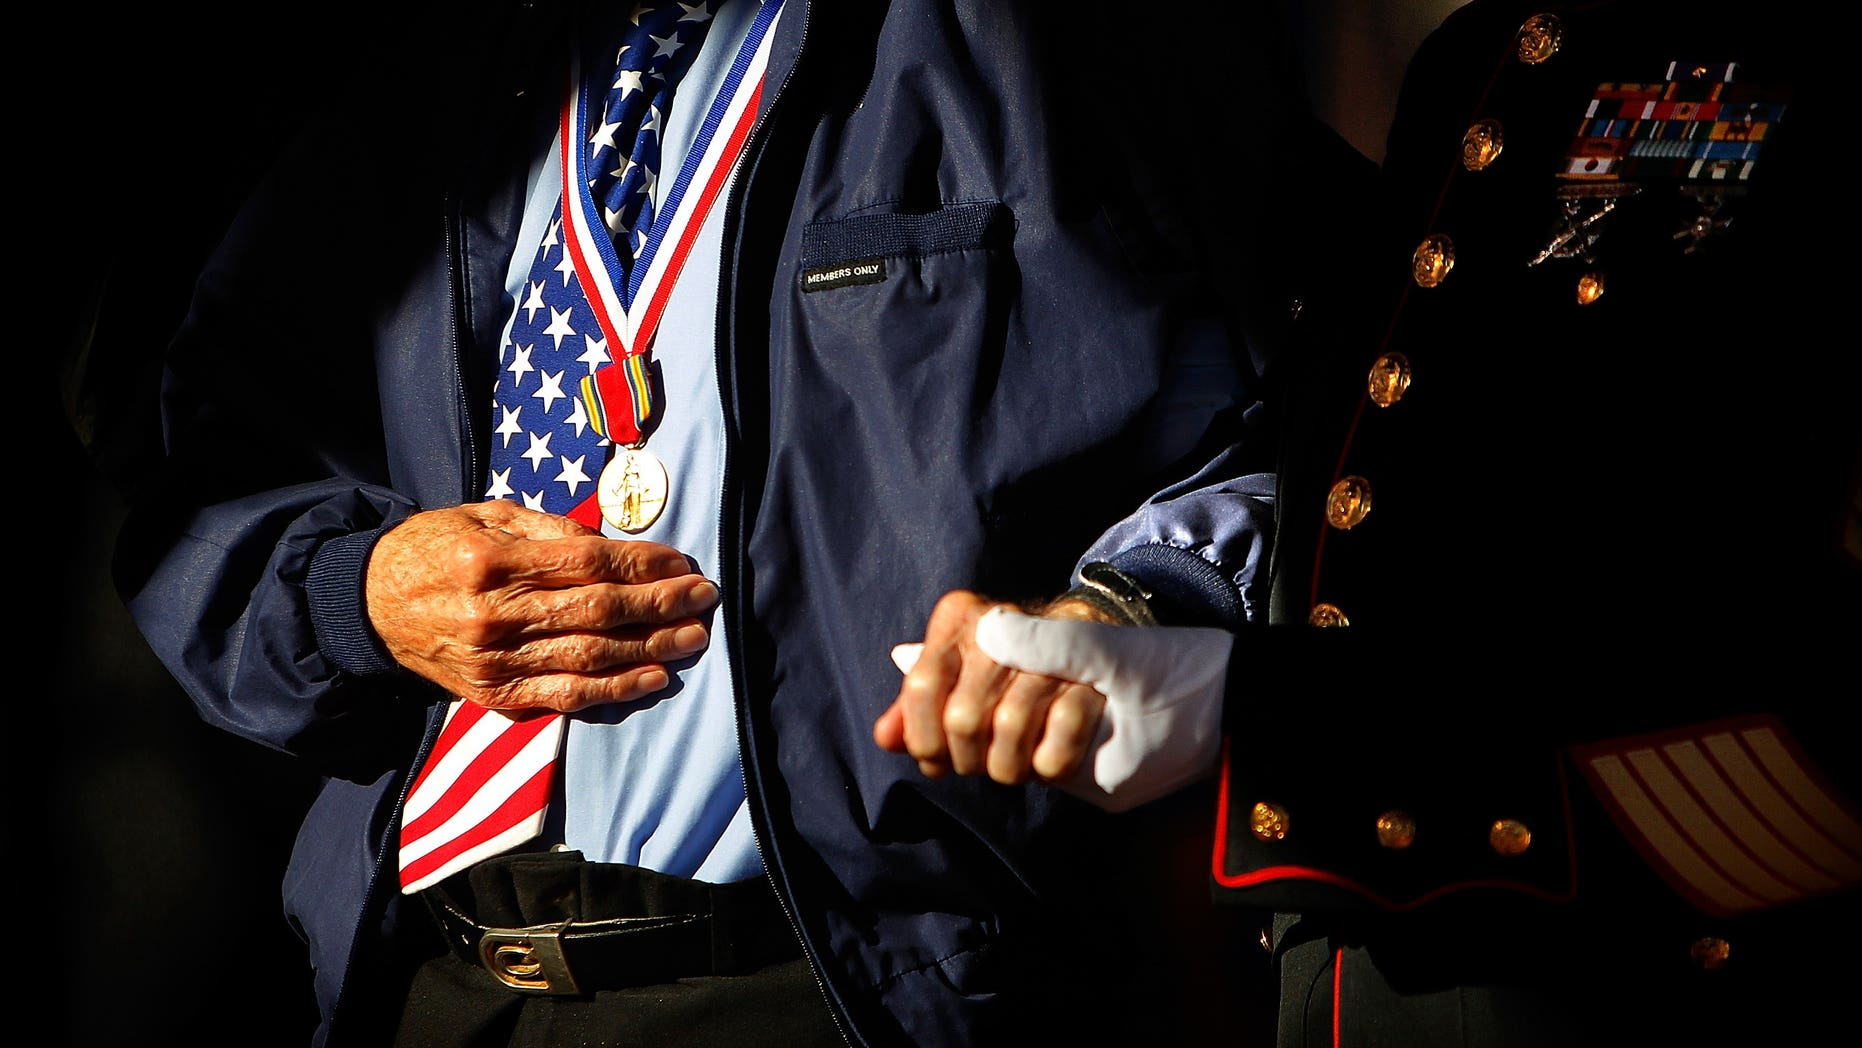 Veterans Day: Respect, gratitude and support — how every American can honor veterans